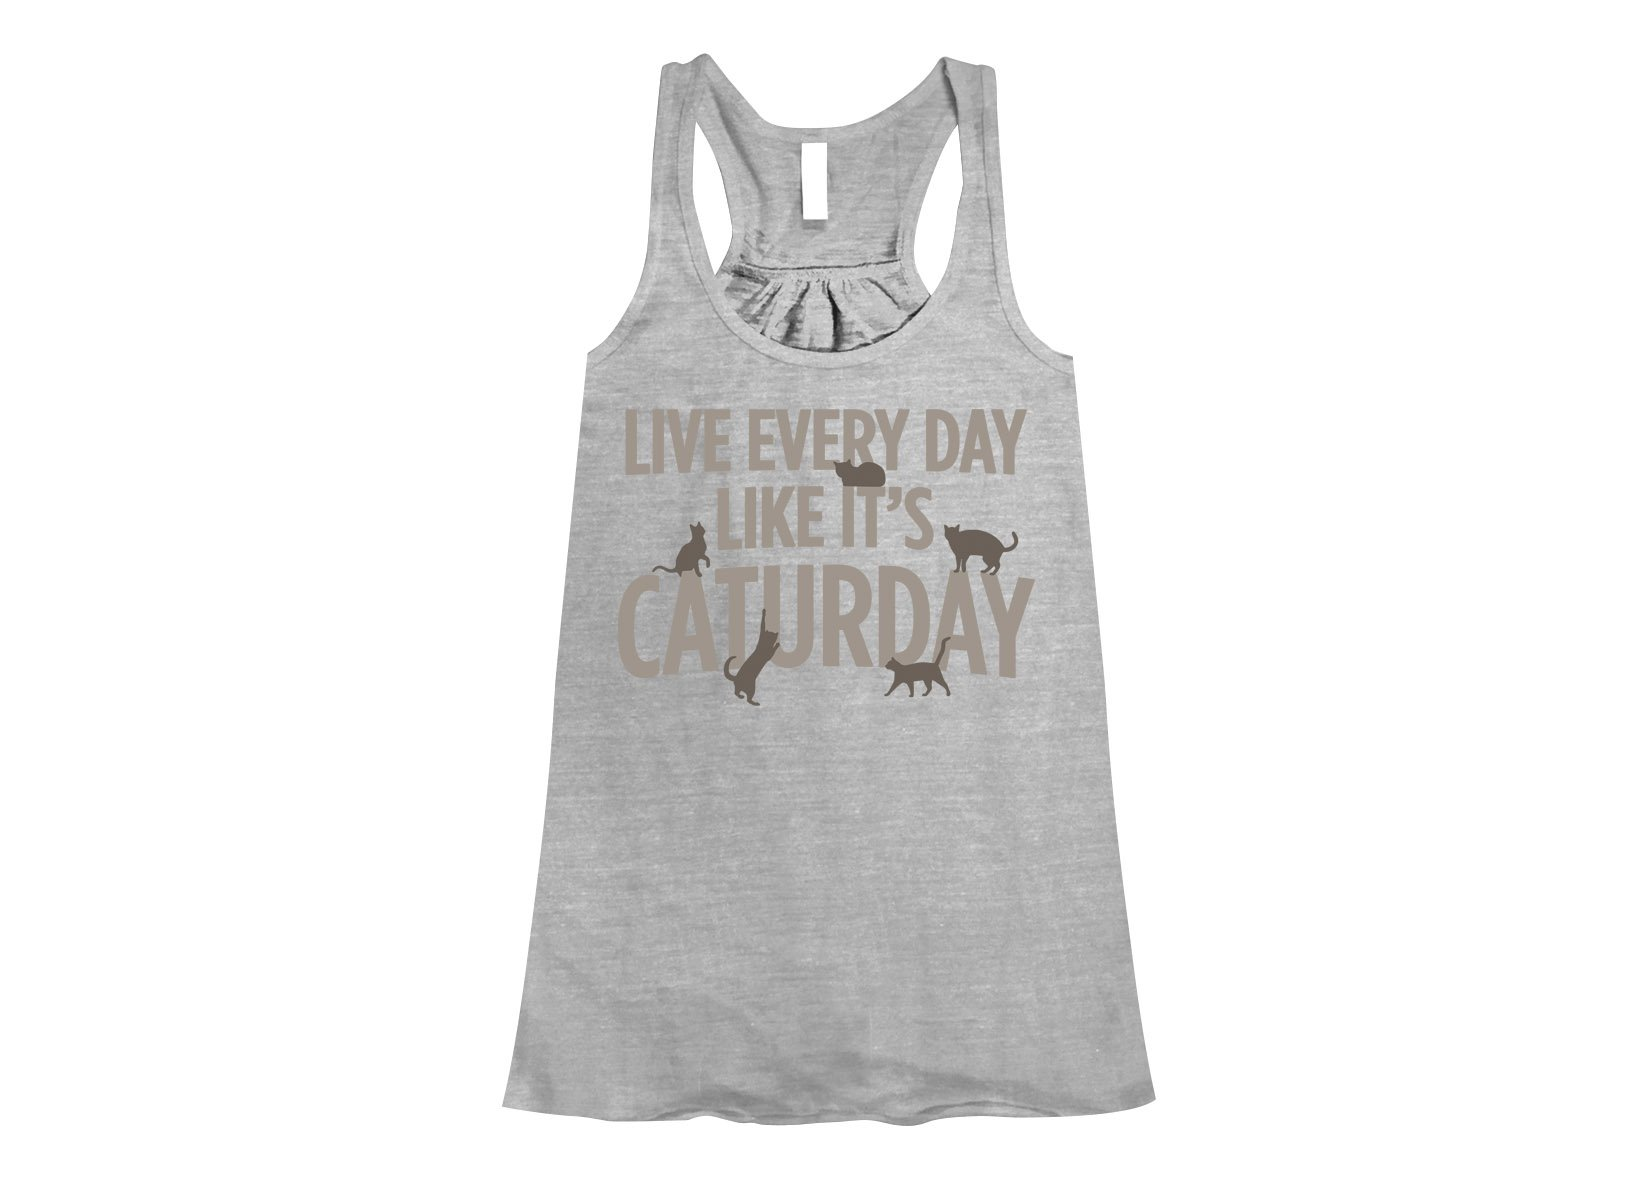 Live Every Day Like It's Caturday on Womens Tanks T-Shirt